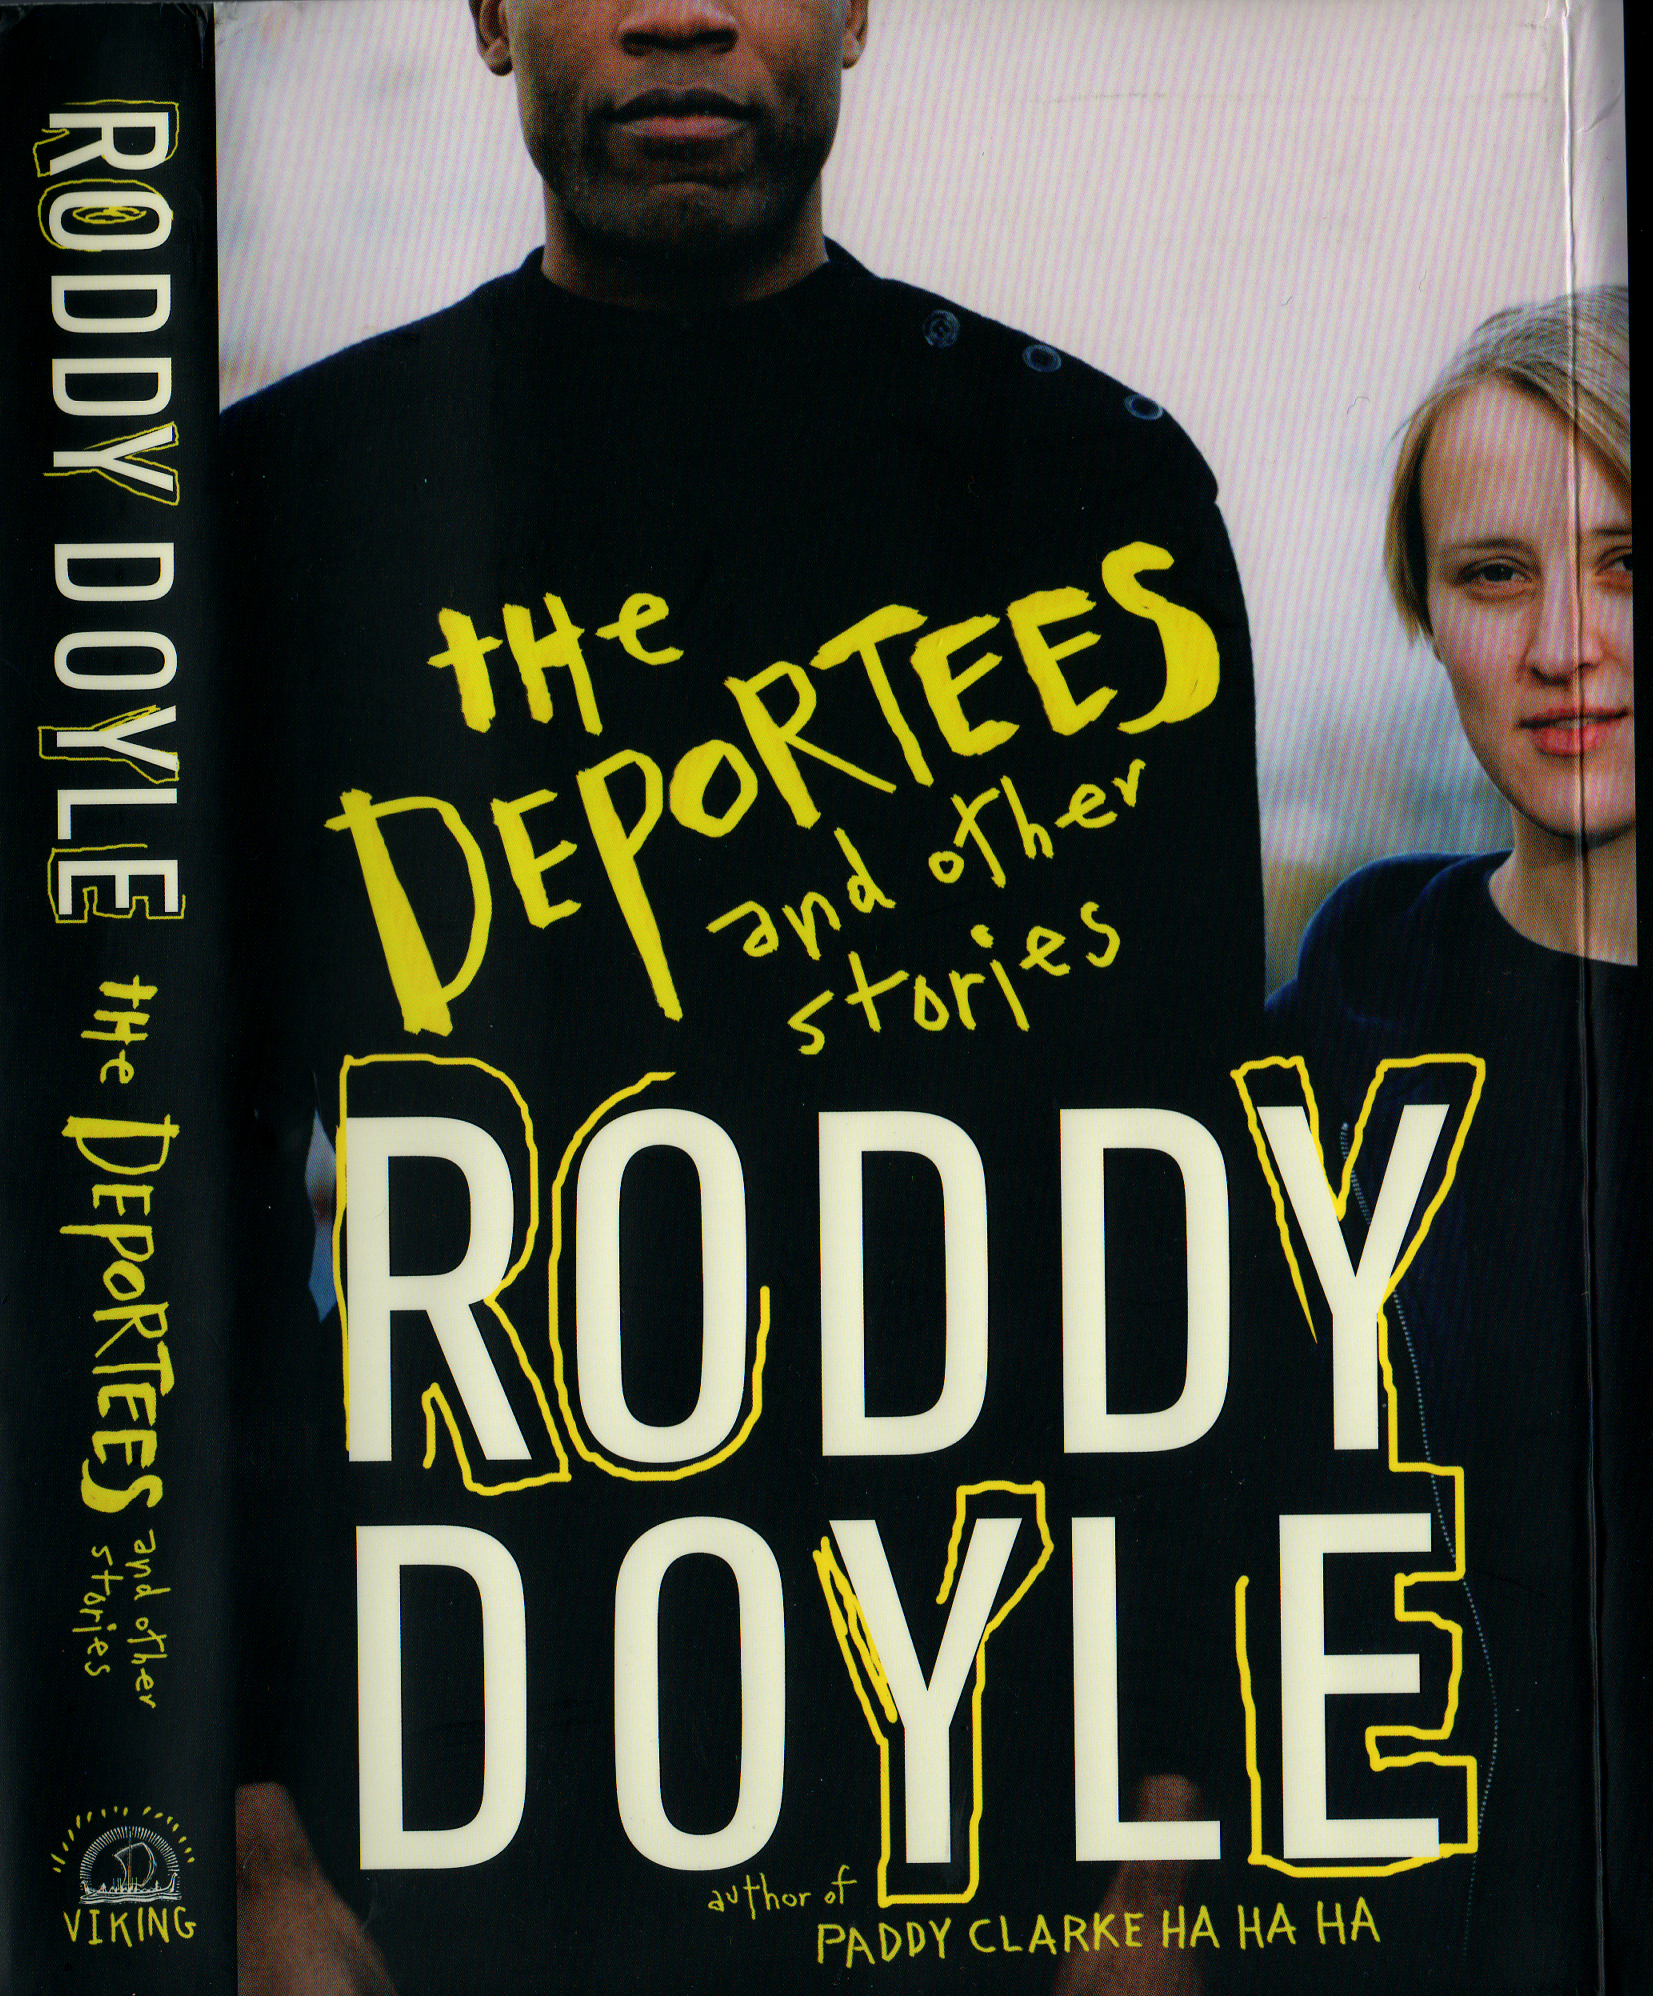 "Roddy Doyle's ""The Deportees and other stories"" (2007) is a collection of tales focusing on immigrants in Ireland."